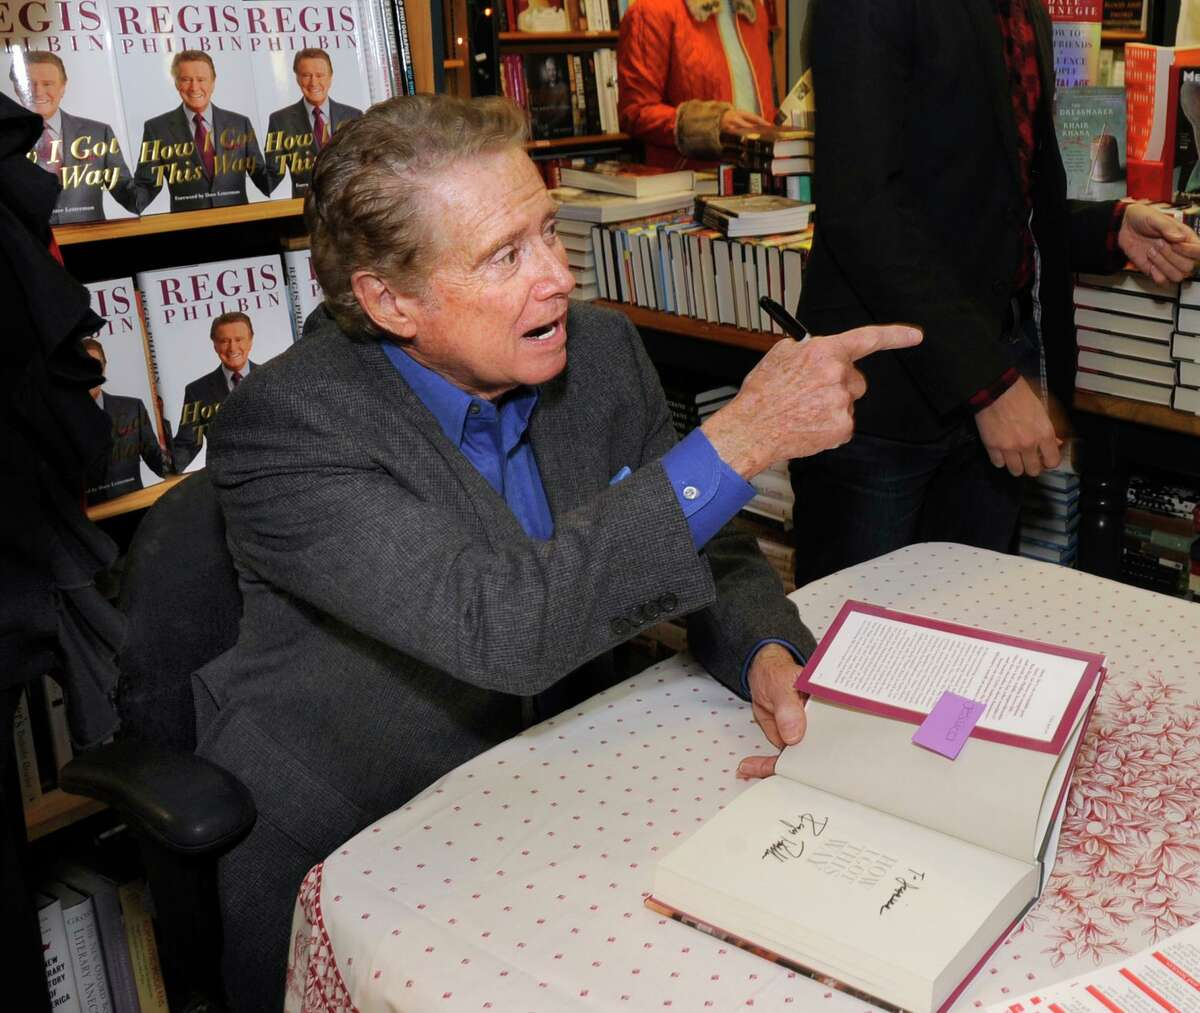 """Greenwich resident Regis Philbin signs a copy of his new memoir """"How I Got This Way,"""" during an appearance at Diane's Books in Greenwich, Saturday afternoon, Dec. 3, 2011."""